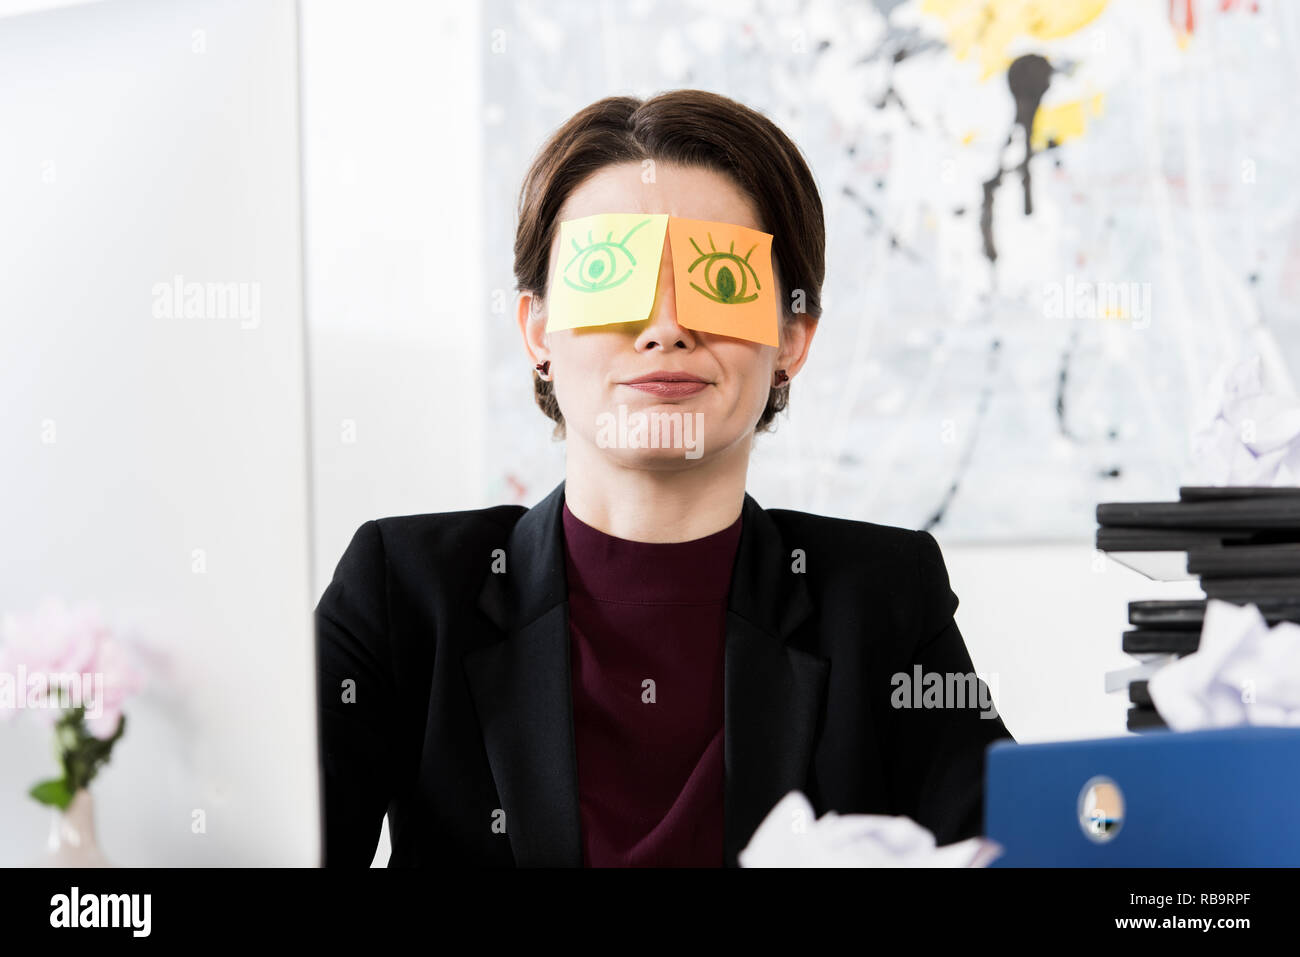 grimacing businesswoman sitting with stickers on eyes in office - Stock Image